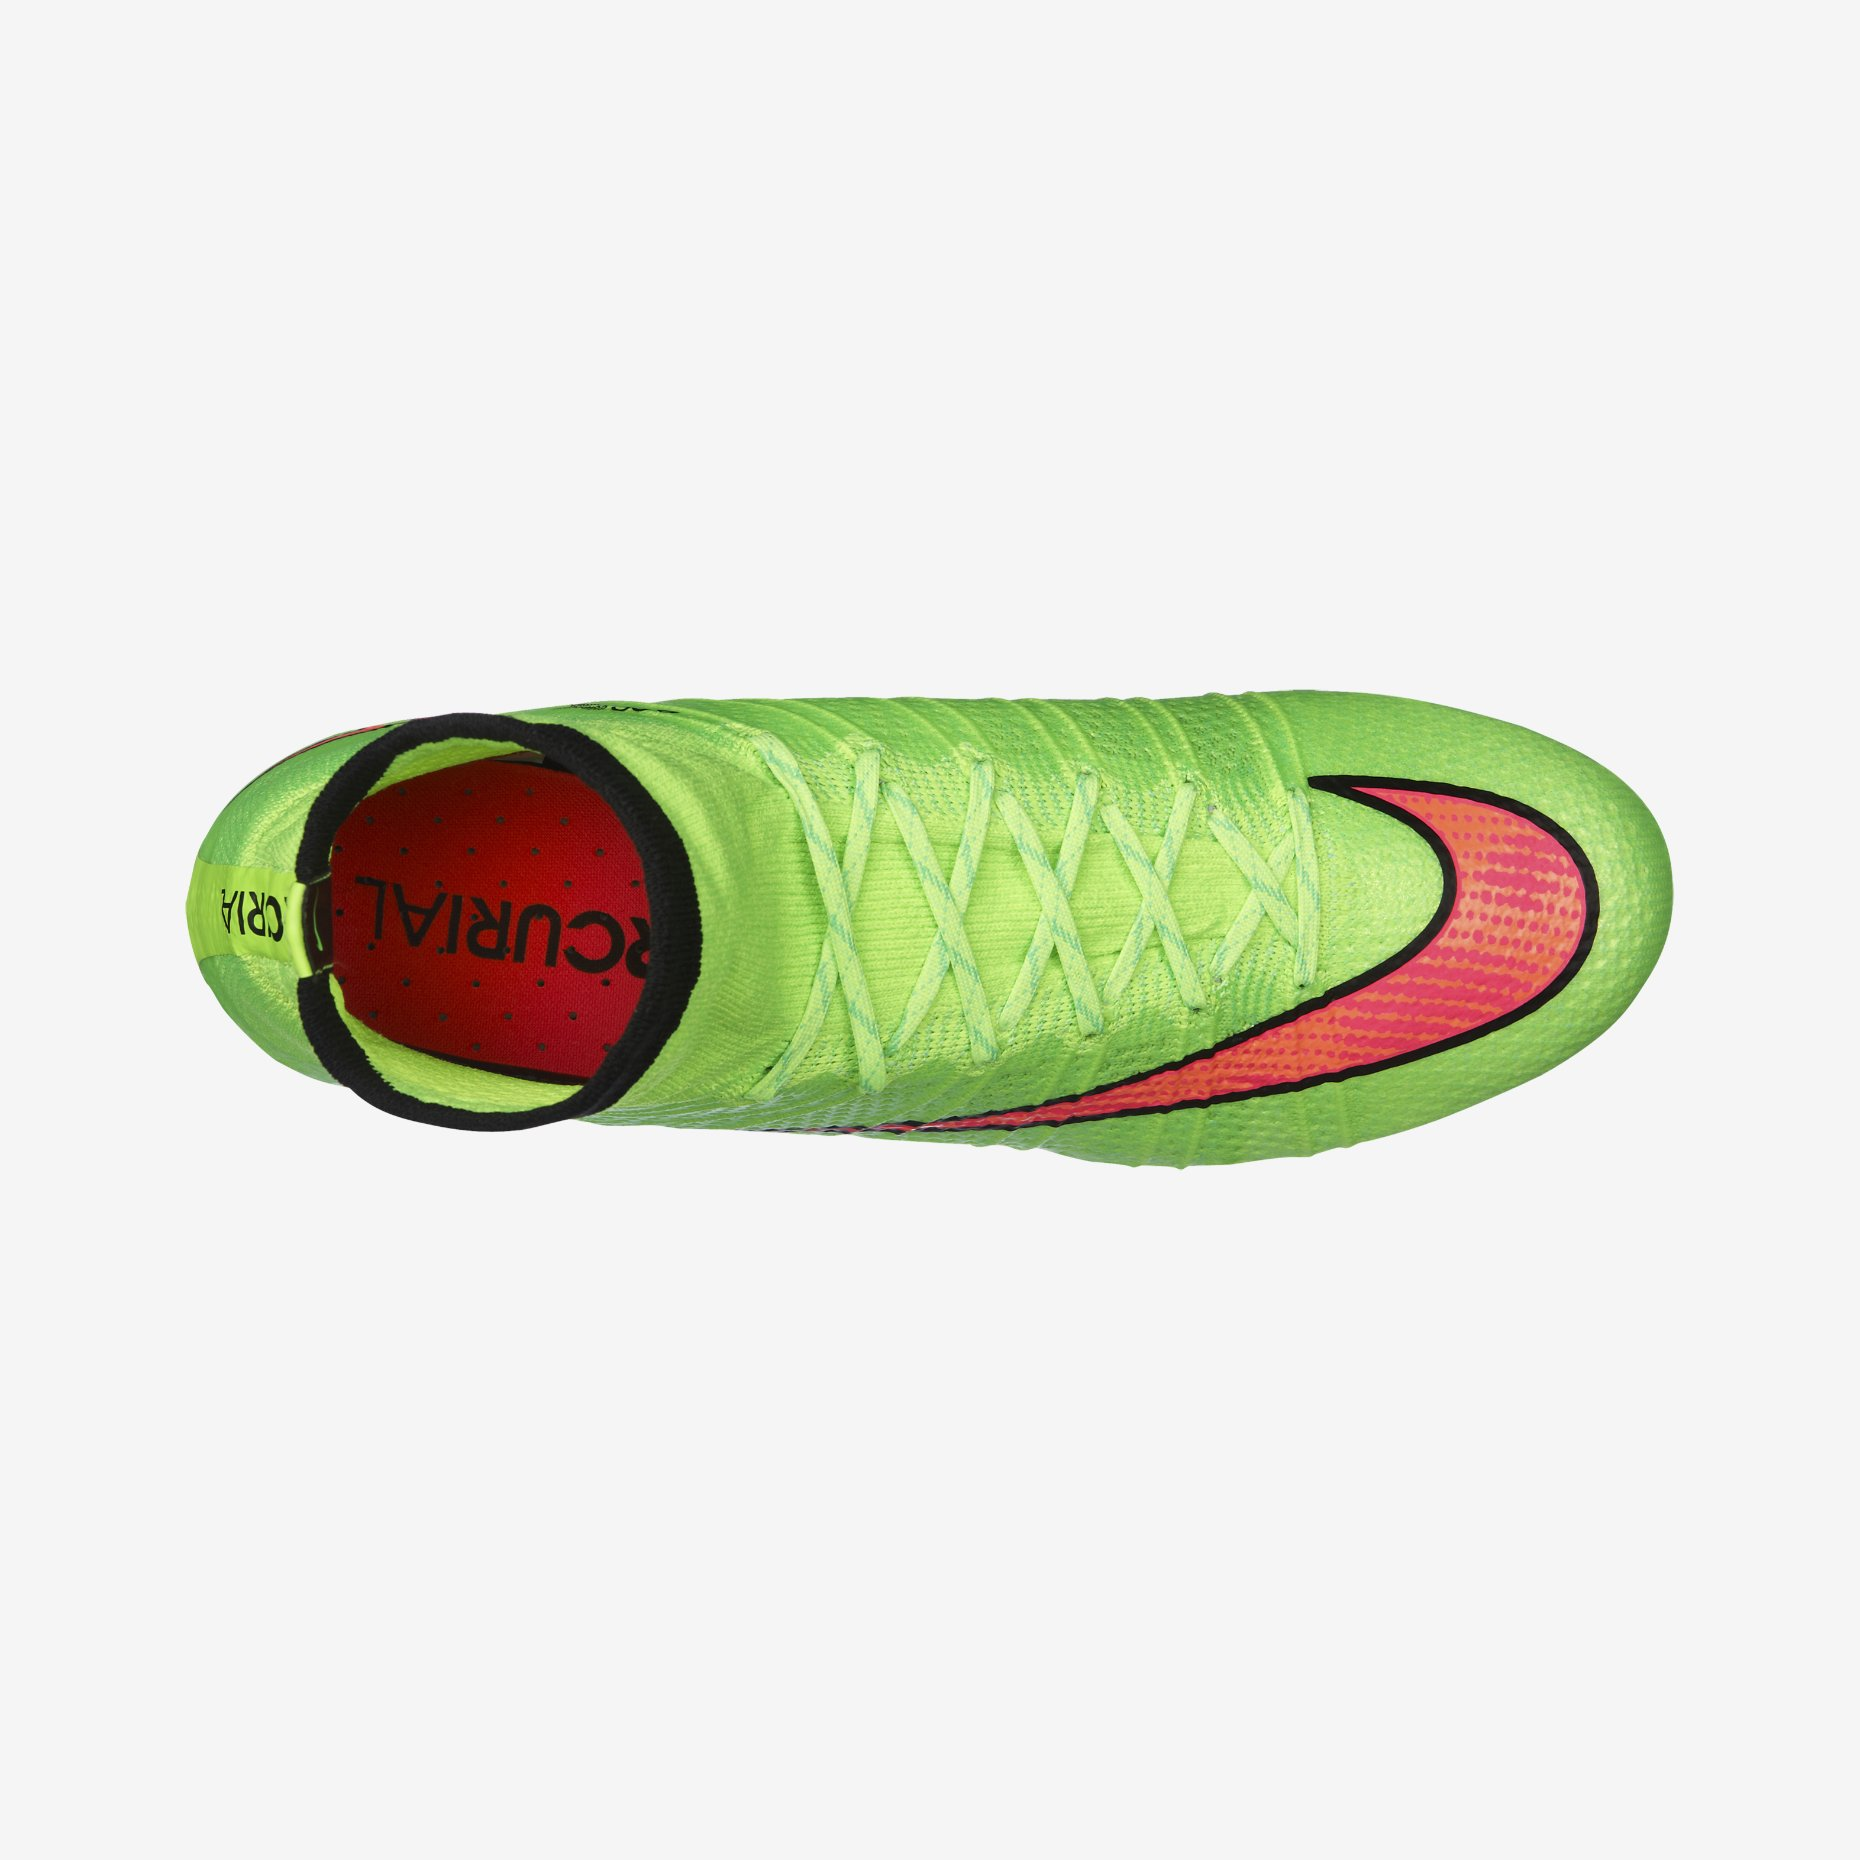 c2f7b7348 Nike launch new Electric Green Superfly boots for Cristiano Ronaldo ...